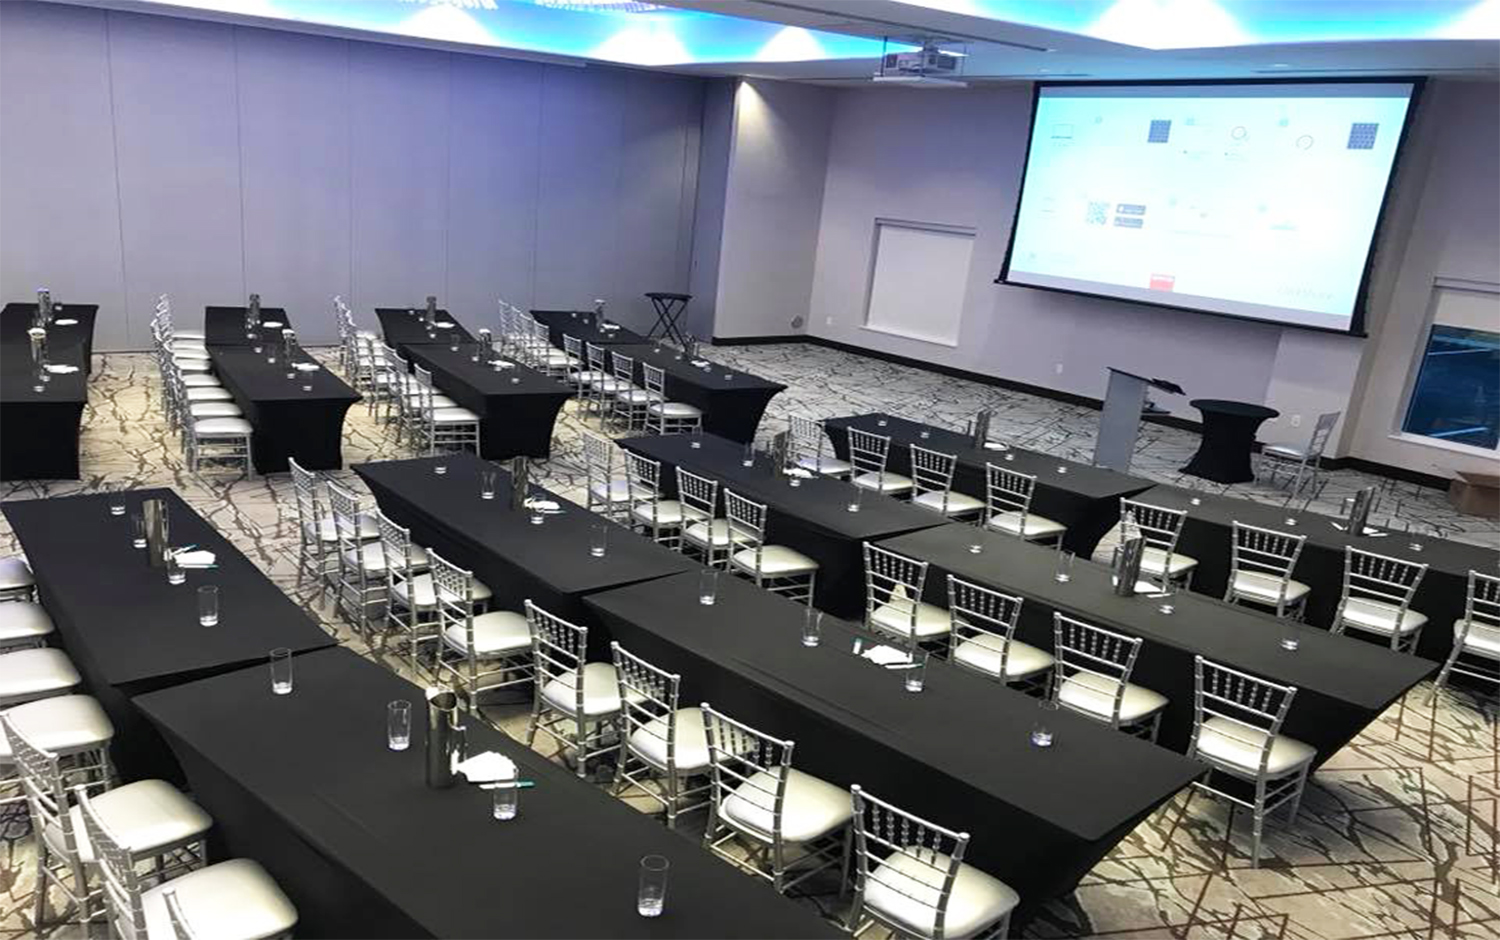 A presentation room with tables